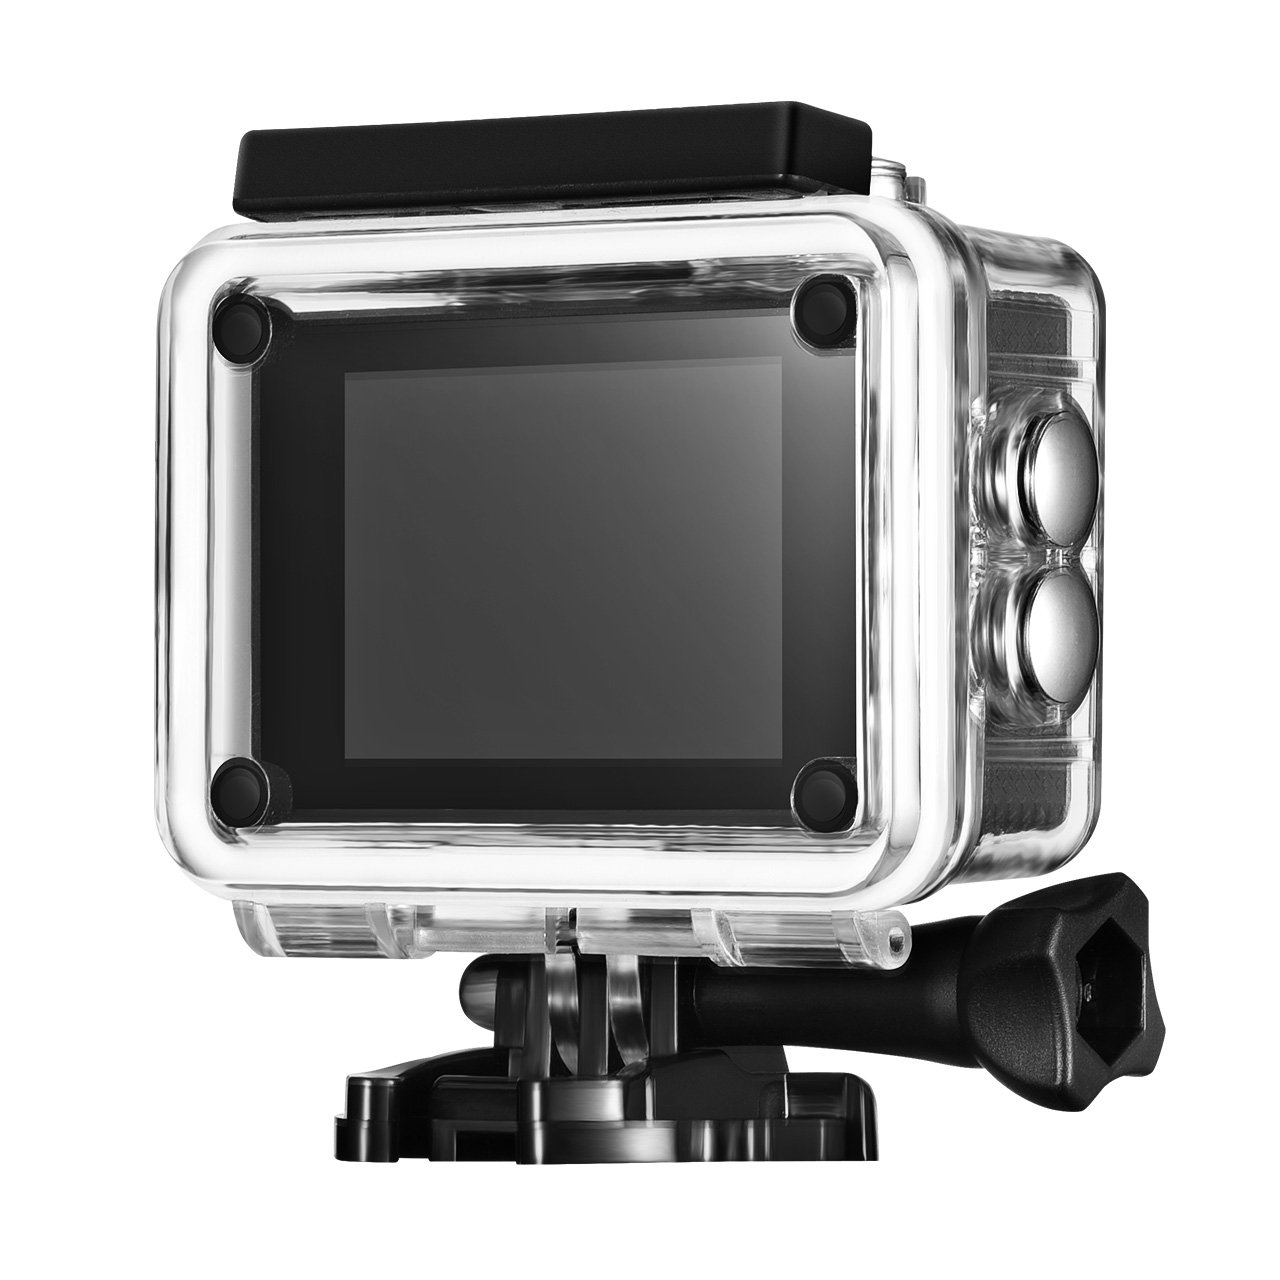 Mpow Waterproof Sport Action Camera, with 170 Degree Wide-angle Lens Full HD 1080p, Suitable for Cycling, Rock climbing, Skiing, Diving and Other Outdoor Activities (Black) by Mpow